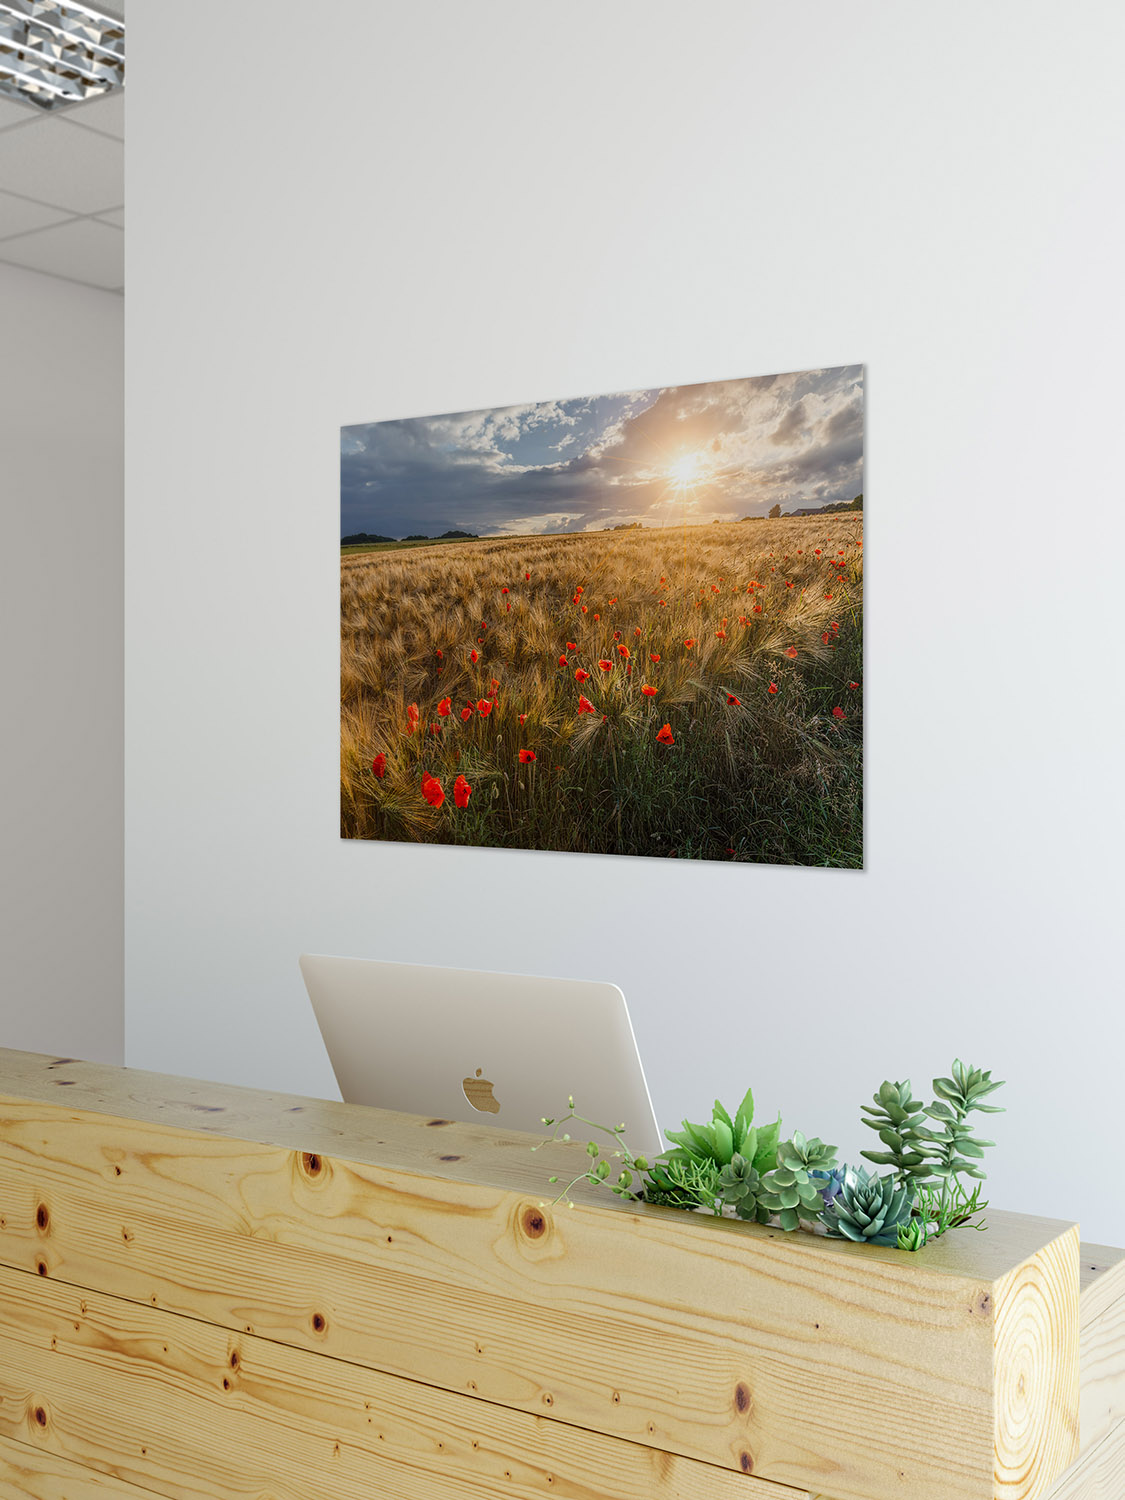 Luxembourg Departure Gift - Limited Edition Fine Art Print